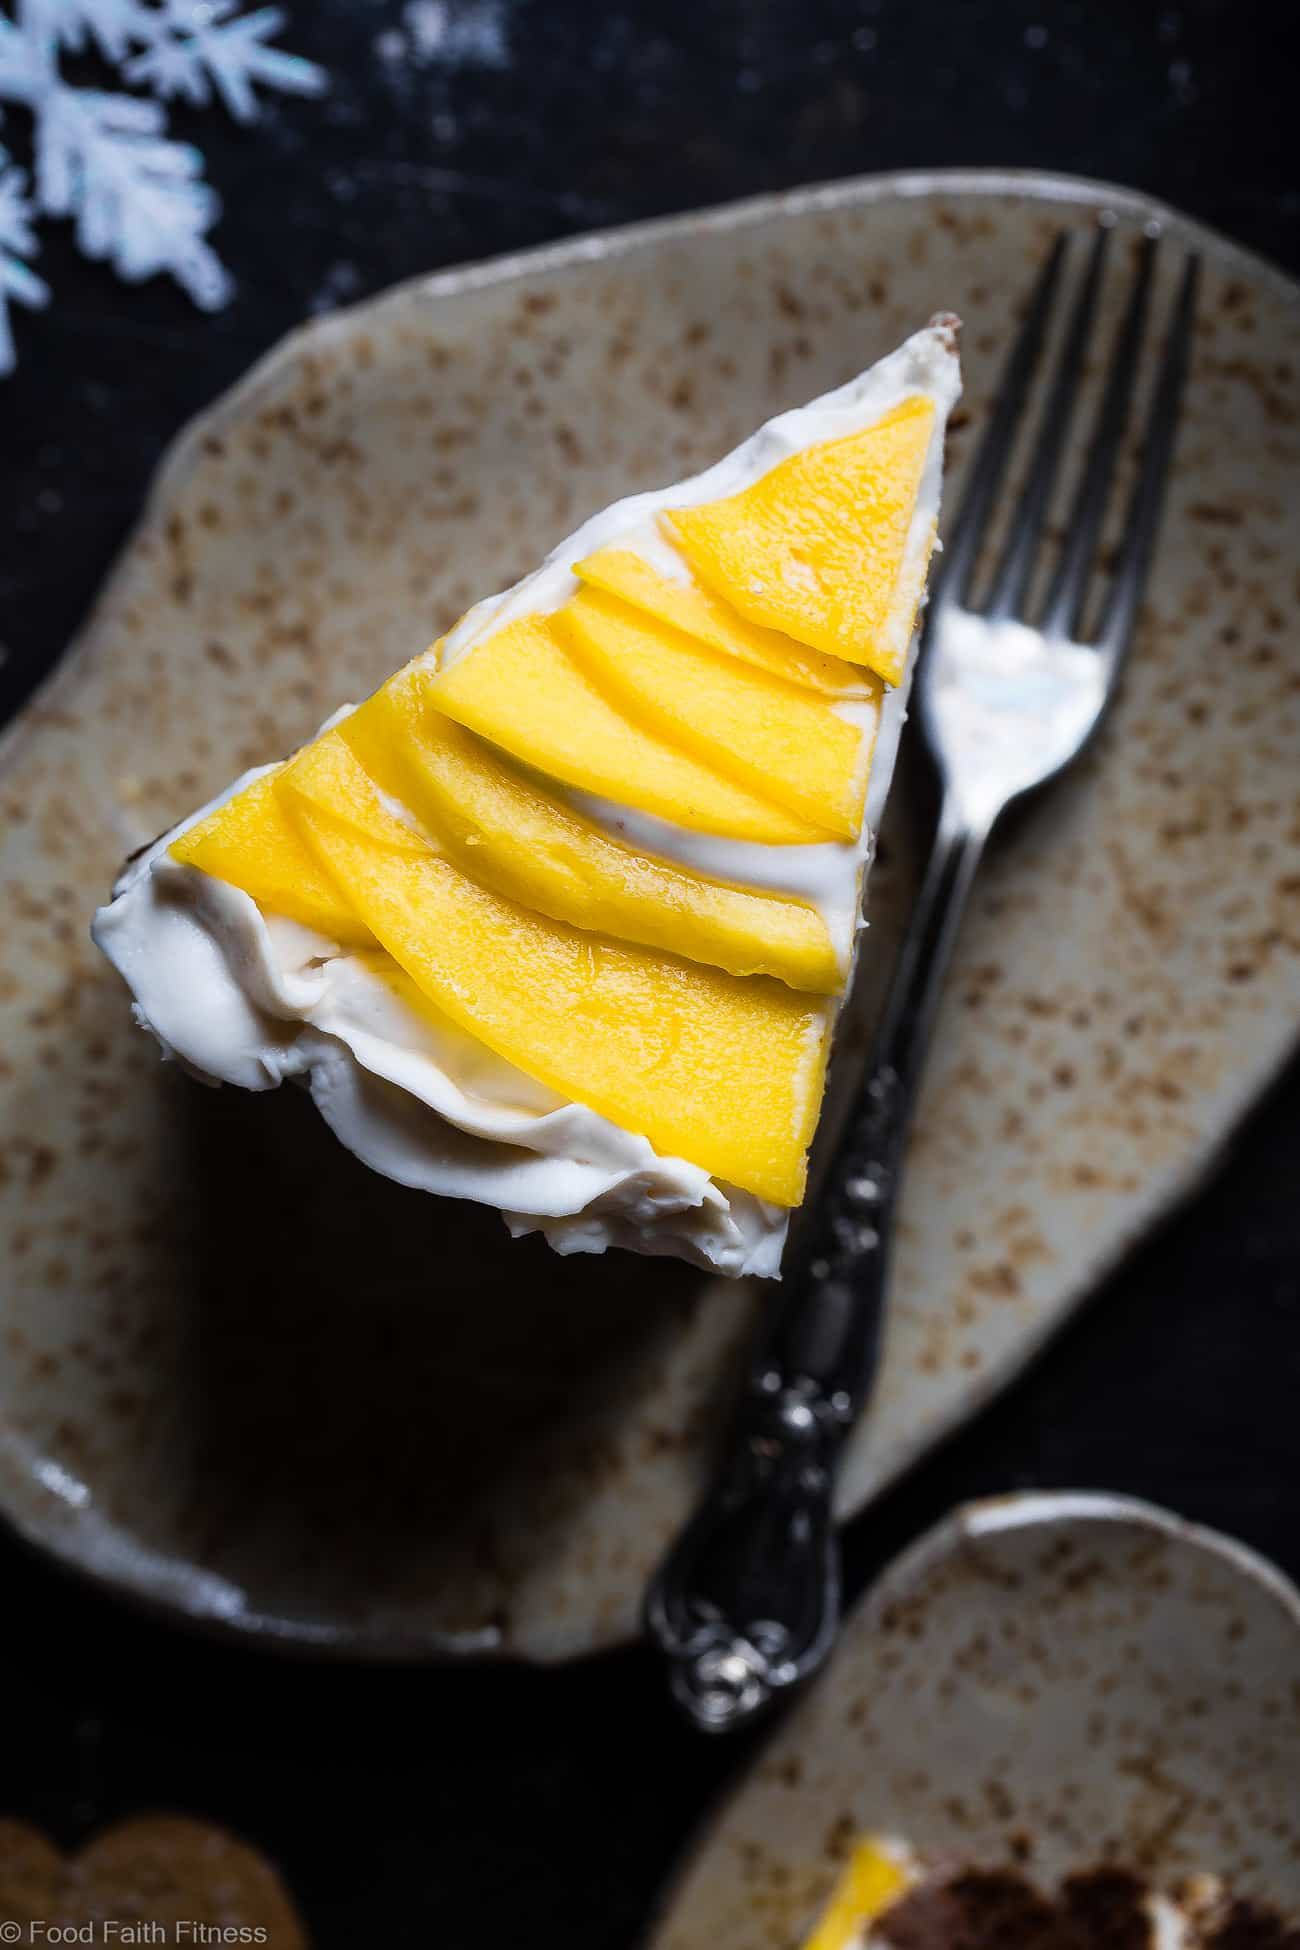 Gluten Free Mango Gingerbread Cake with Coconut Cream - This spicy-sweet, show stopping gluten free gingerbread recipe is studded with juicy, fresh mangoes to create a healthy, paleo-friendly, festive dessert for the Holidays! | Foodfaithfitness.com | @FoodFaithFit